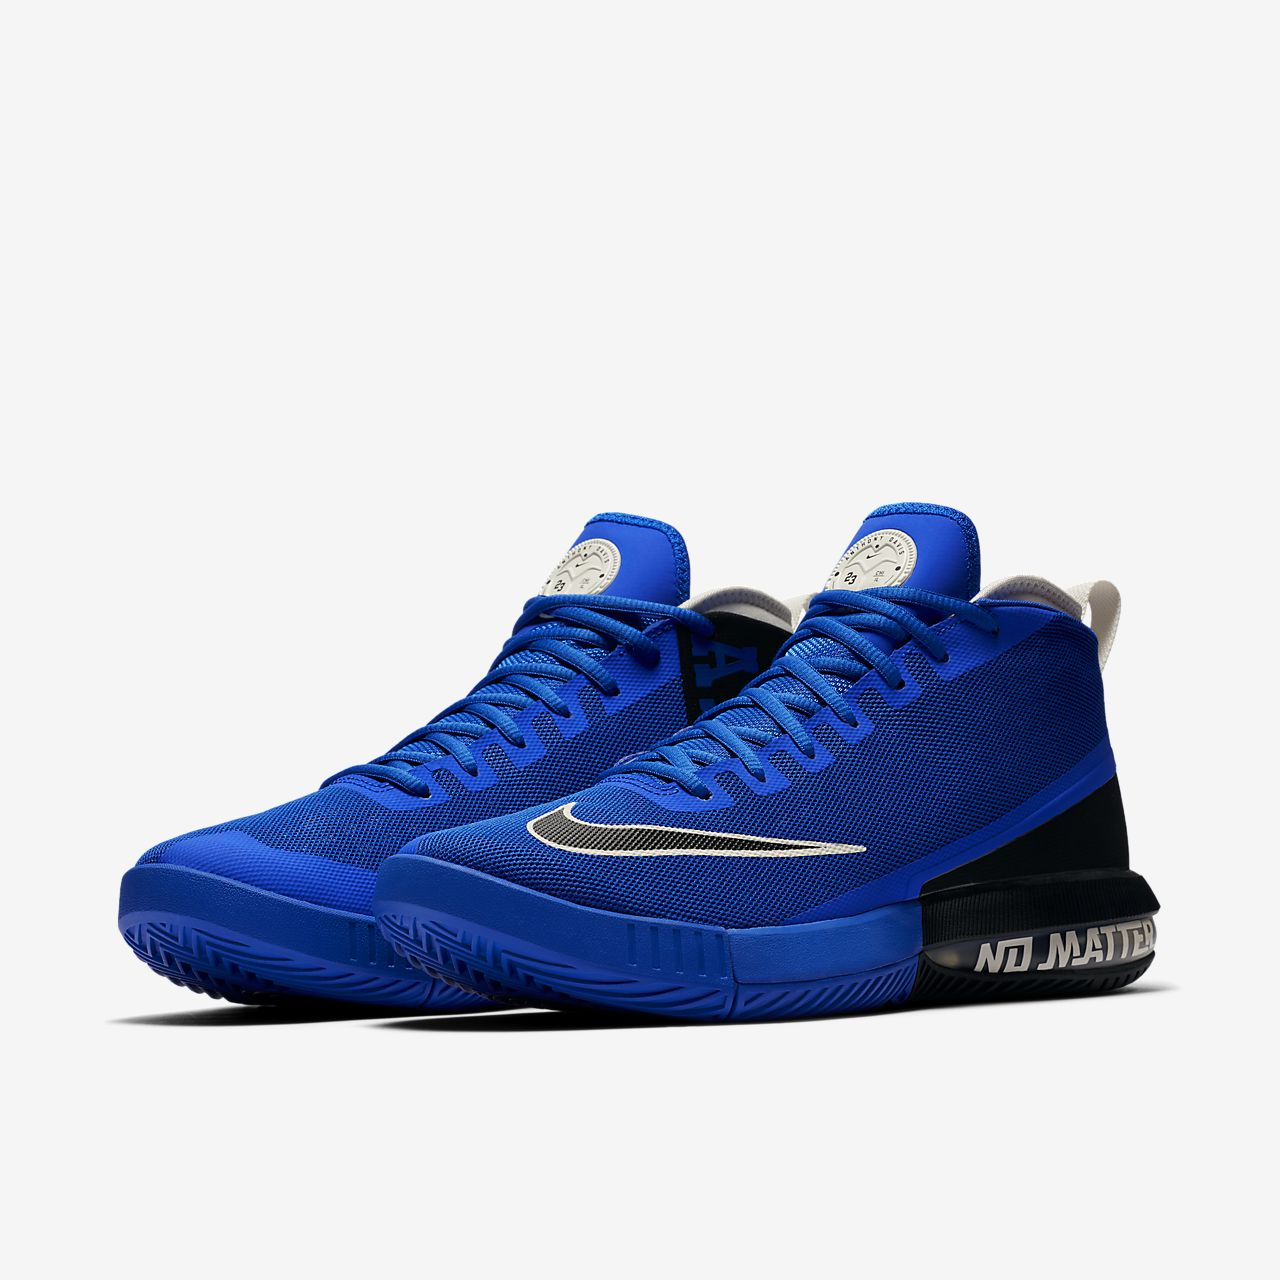 ... Nike Air Max Dominate Anthony Davis Men's Basketball Shoe